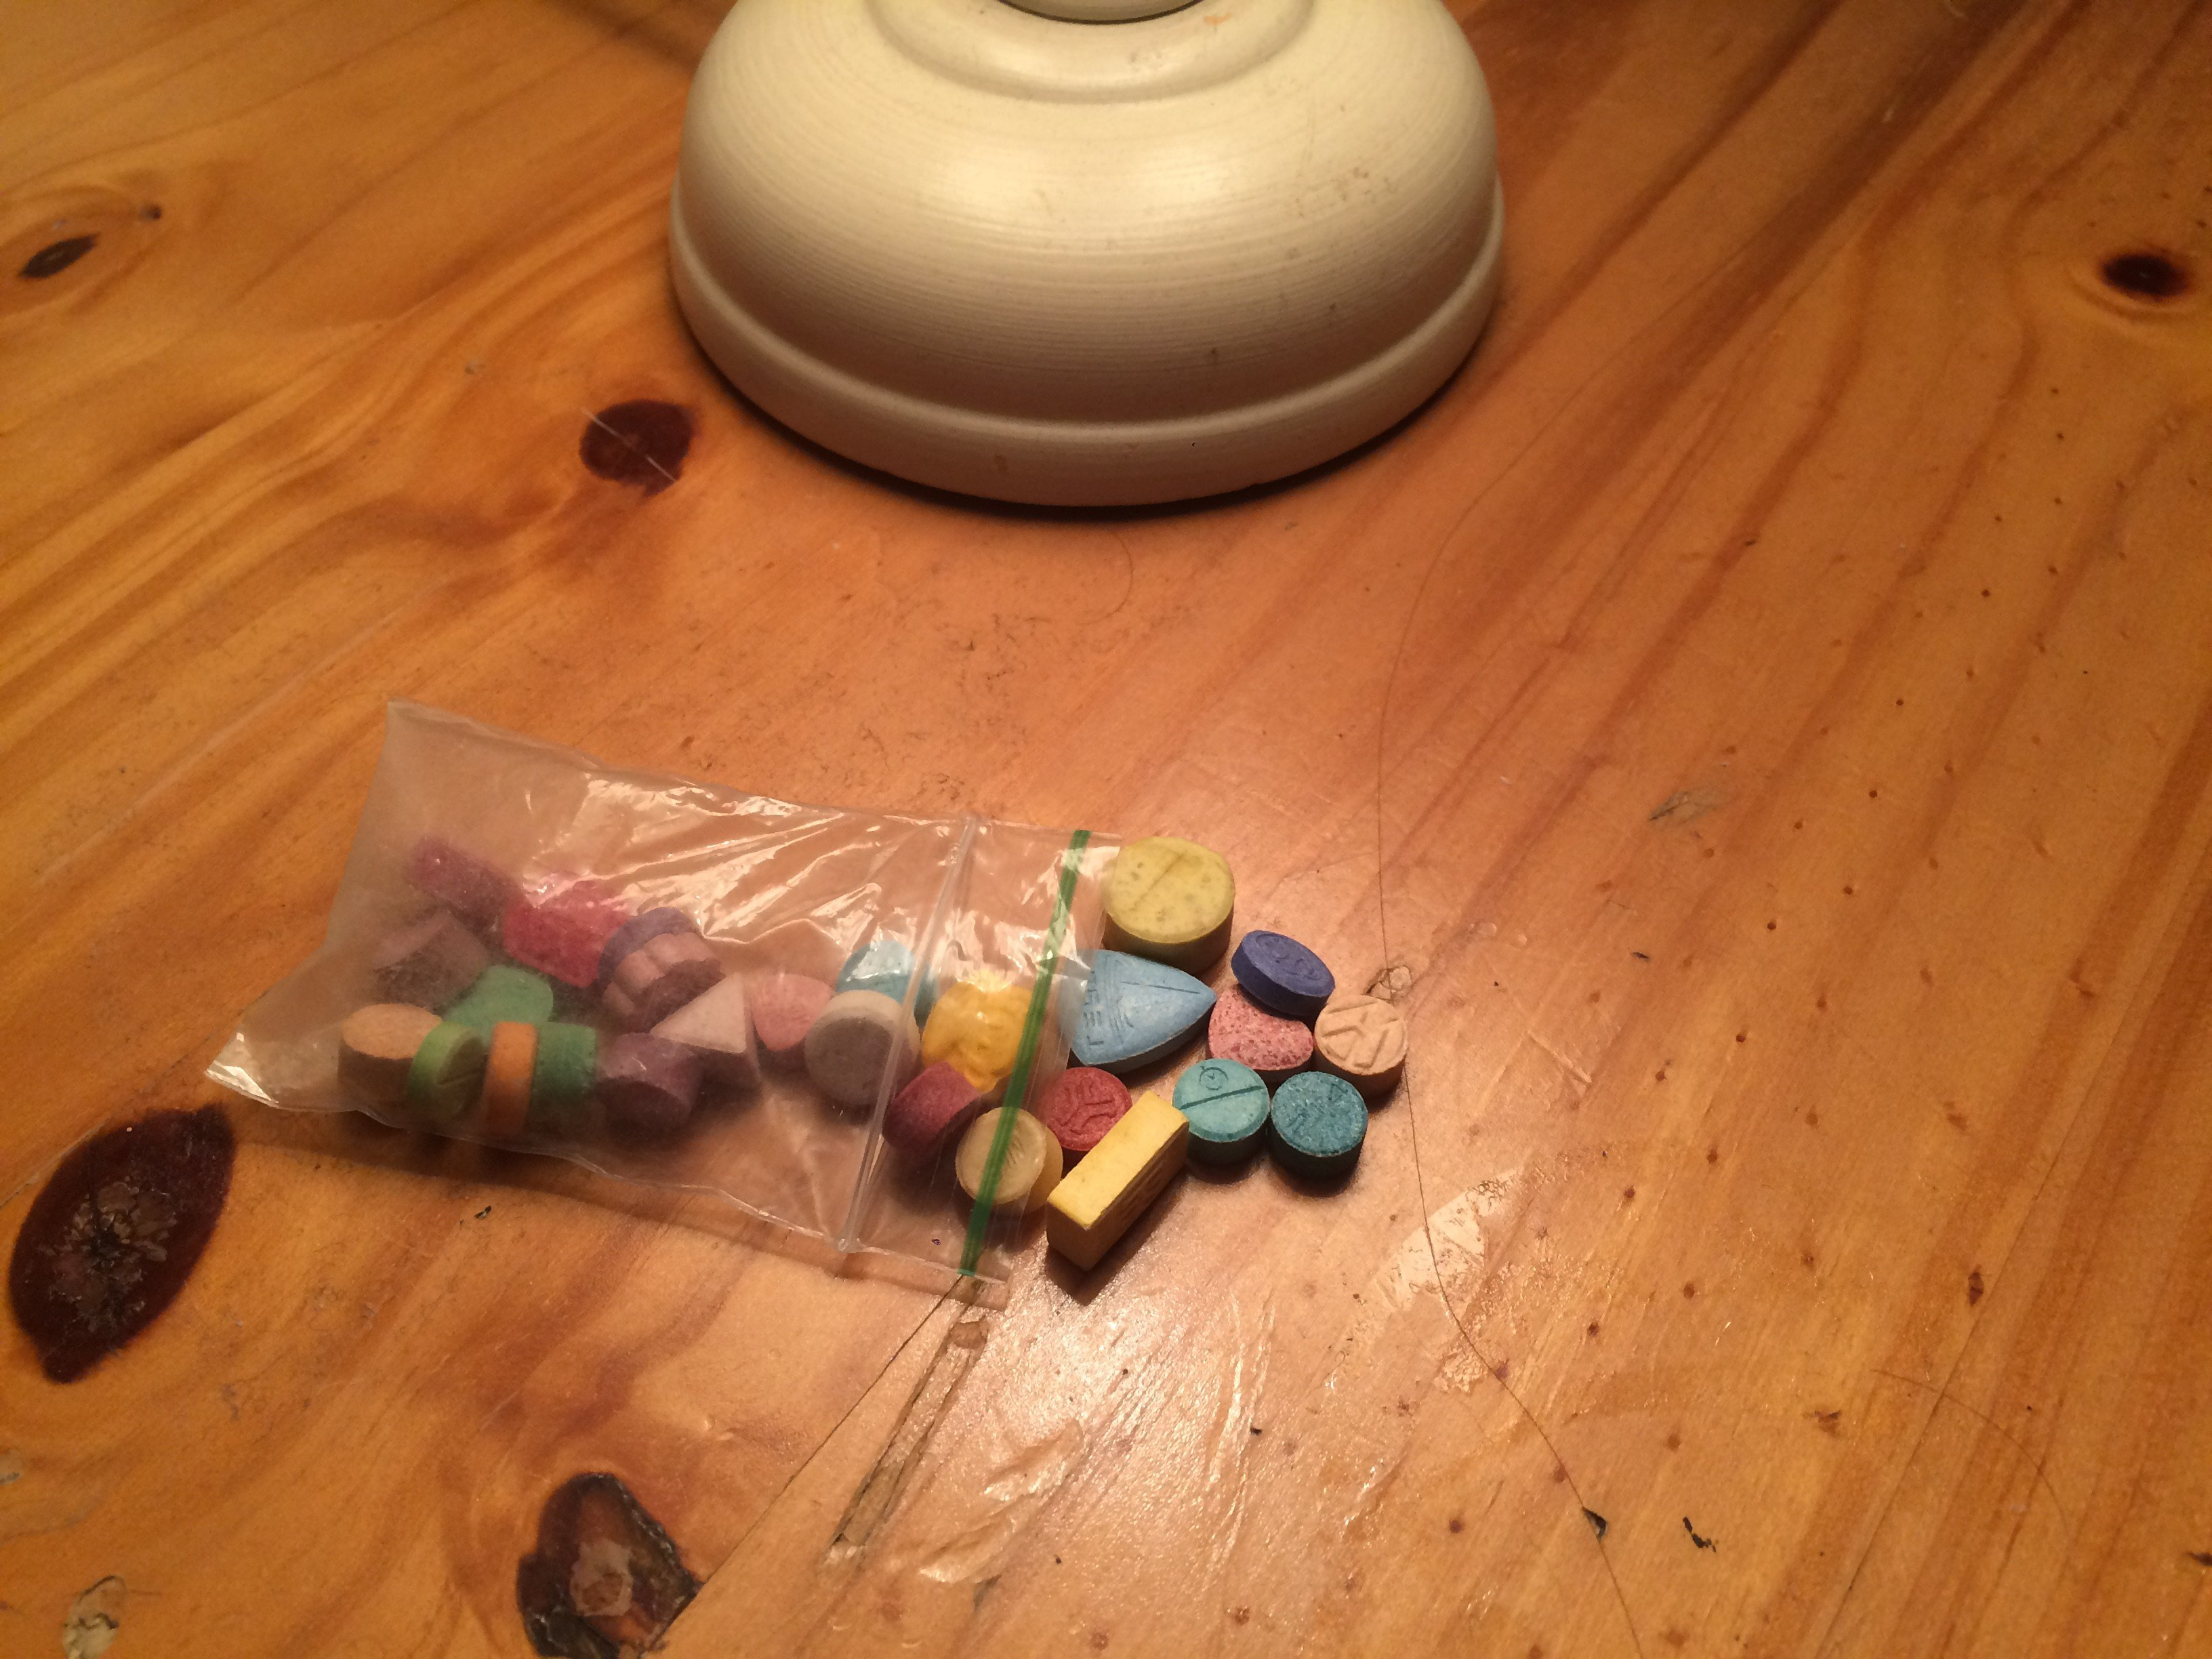 MDMA is most commonly known as a recreational drug, taken in pill form